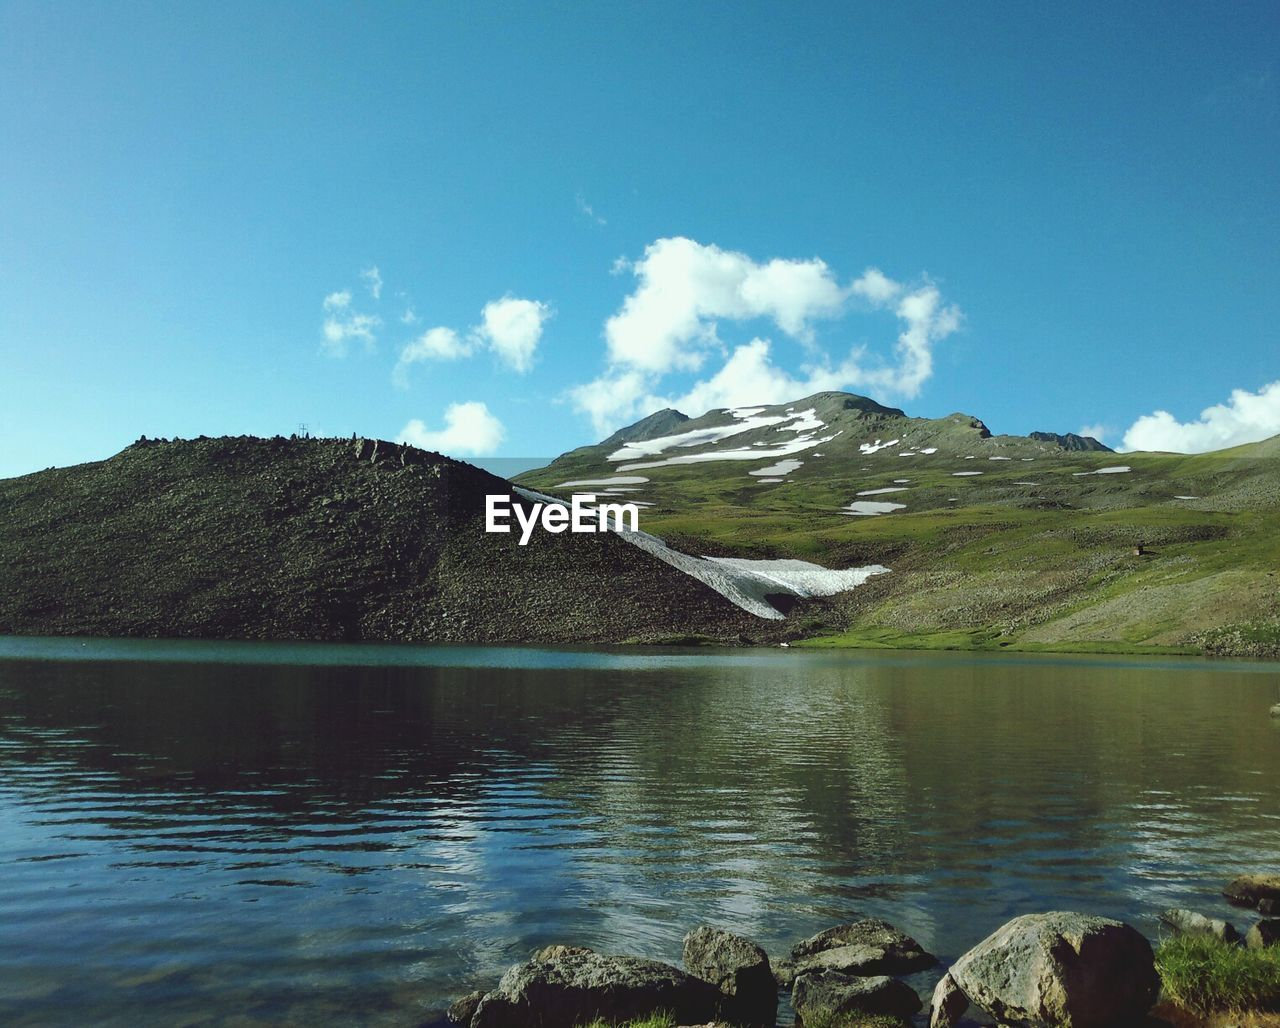 Scenic shot of calm countryside lake against mountains